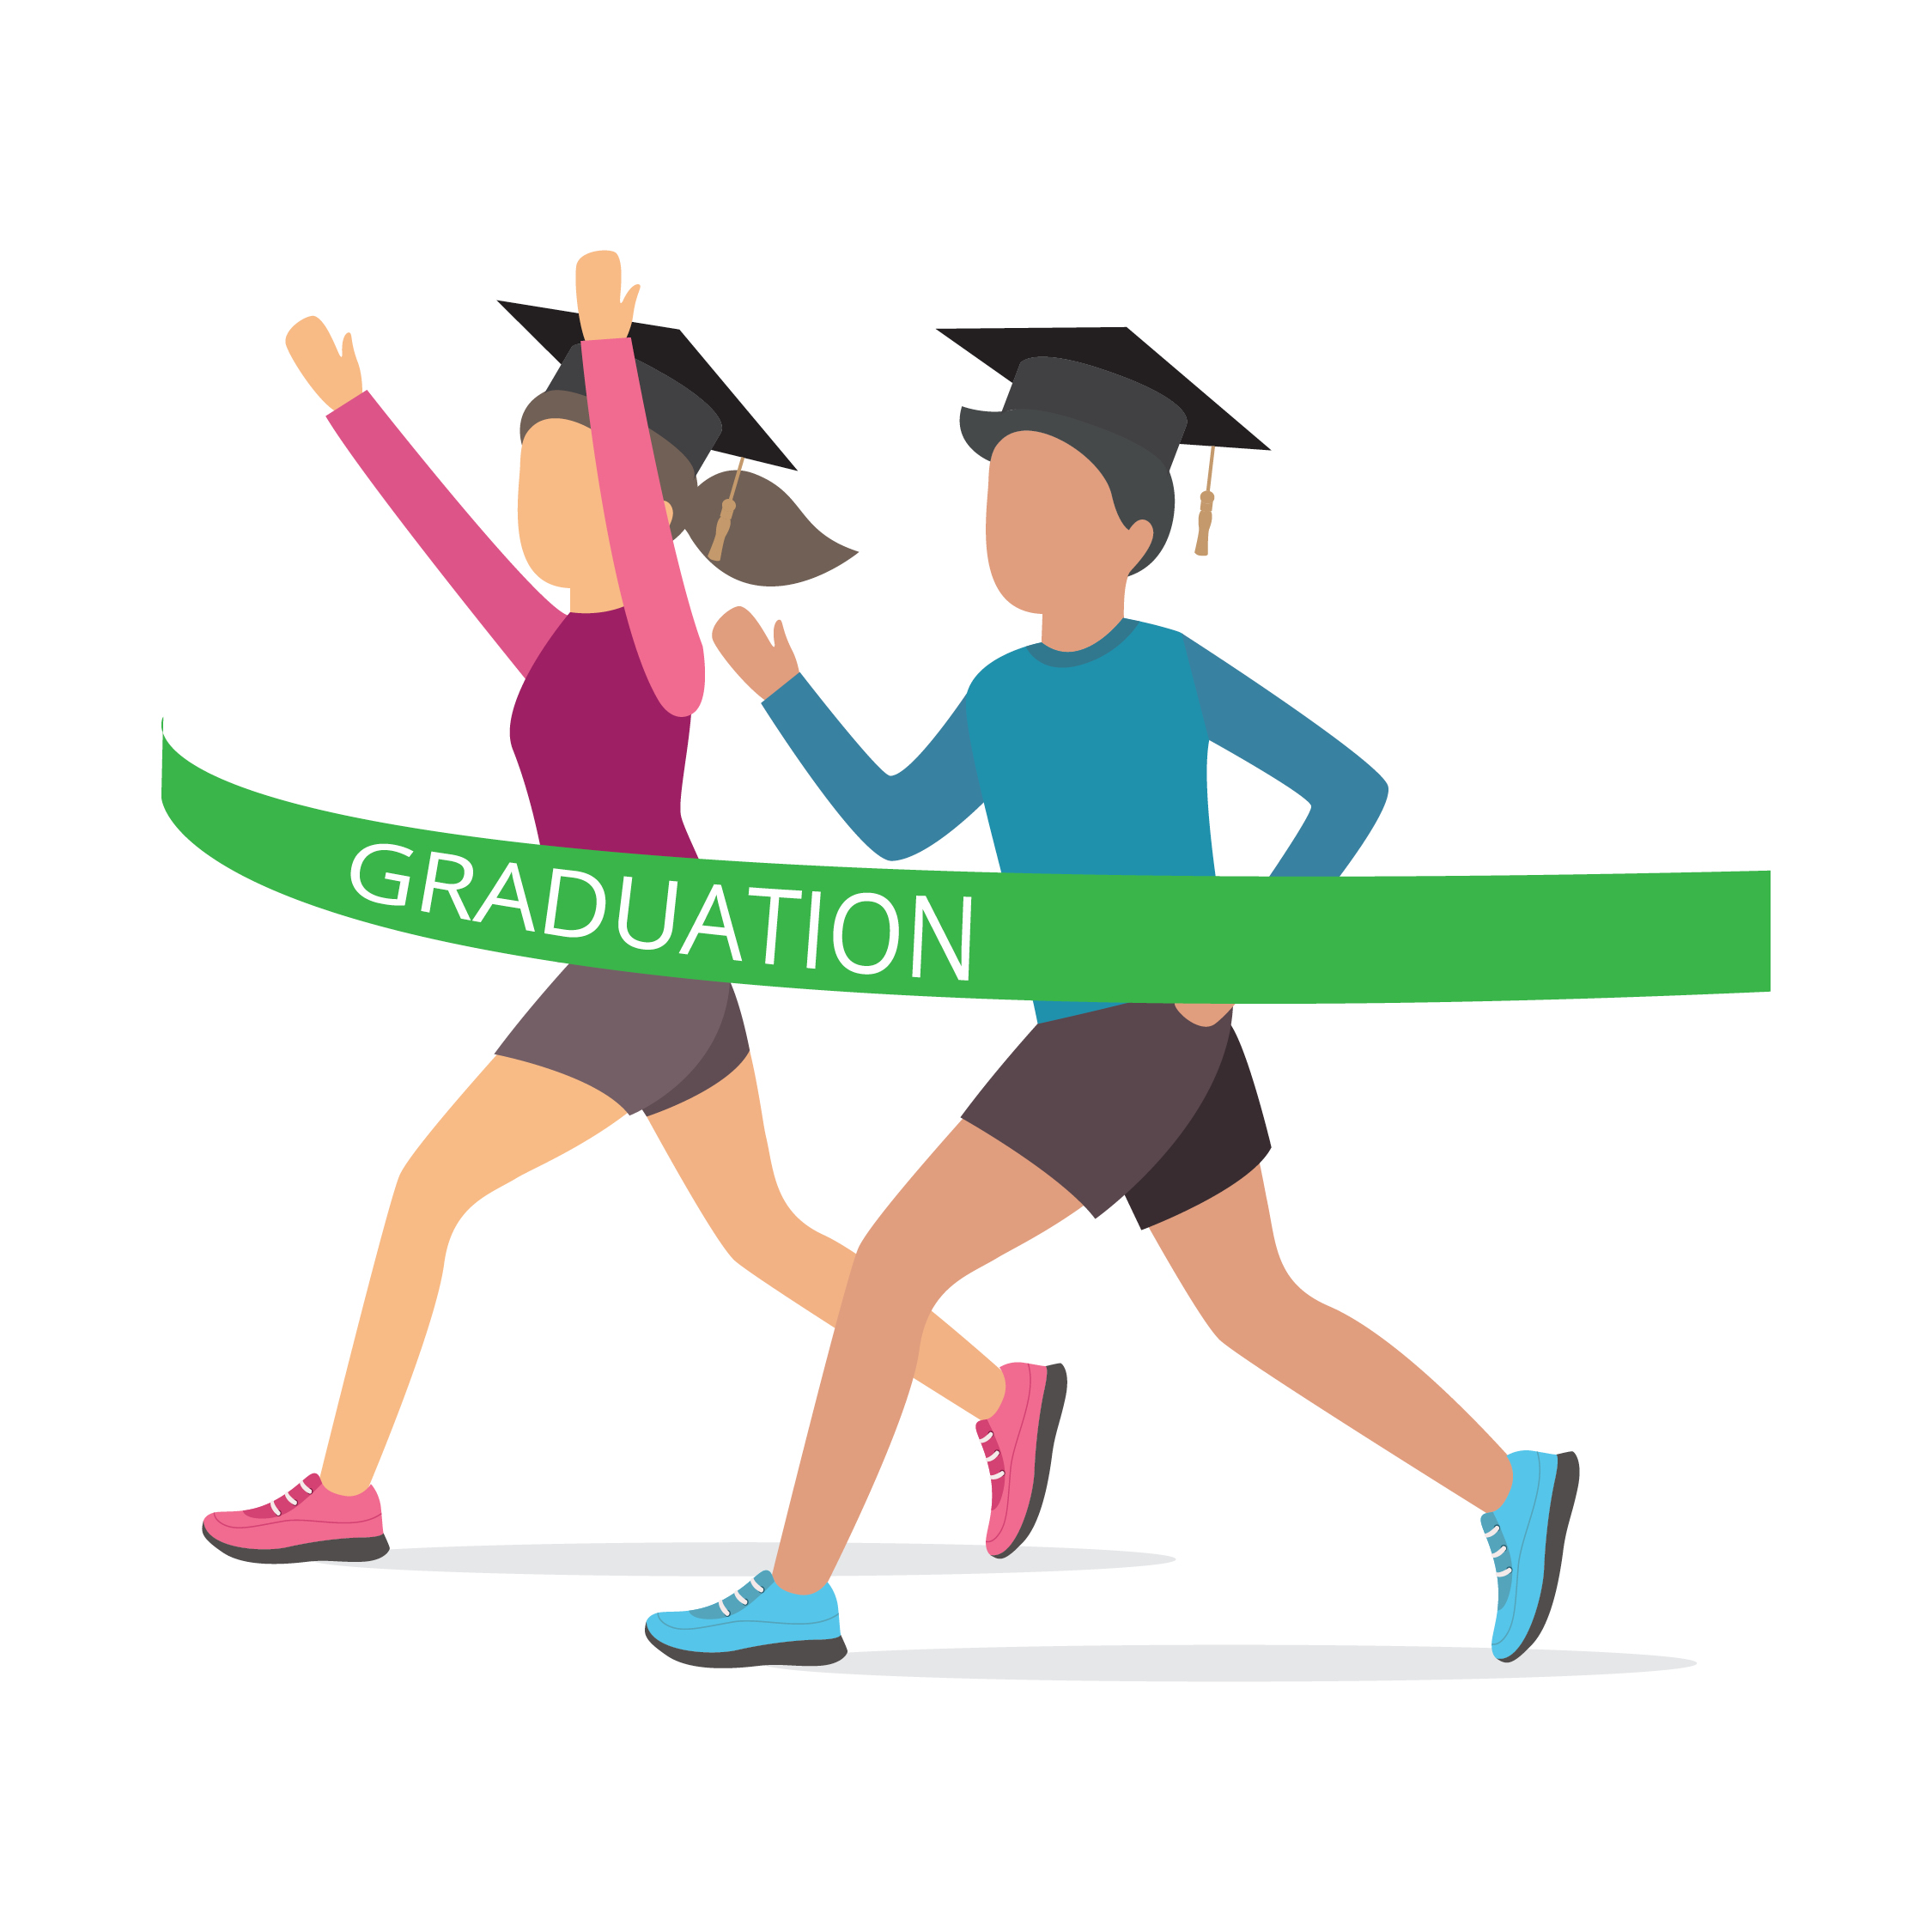 Image of two students, one male, one female, crossing the finish line ribbon of college graduation.